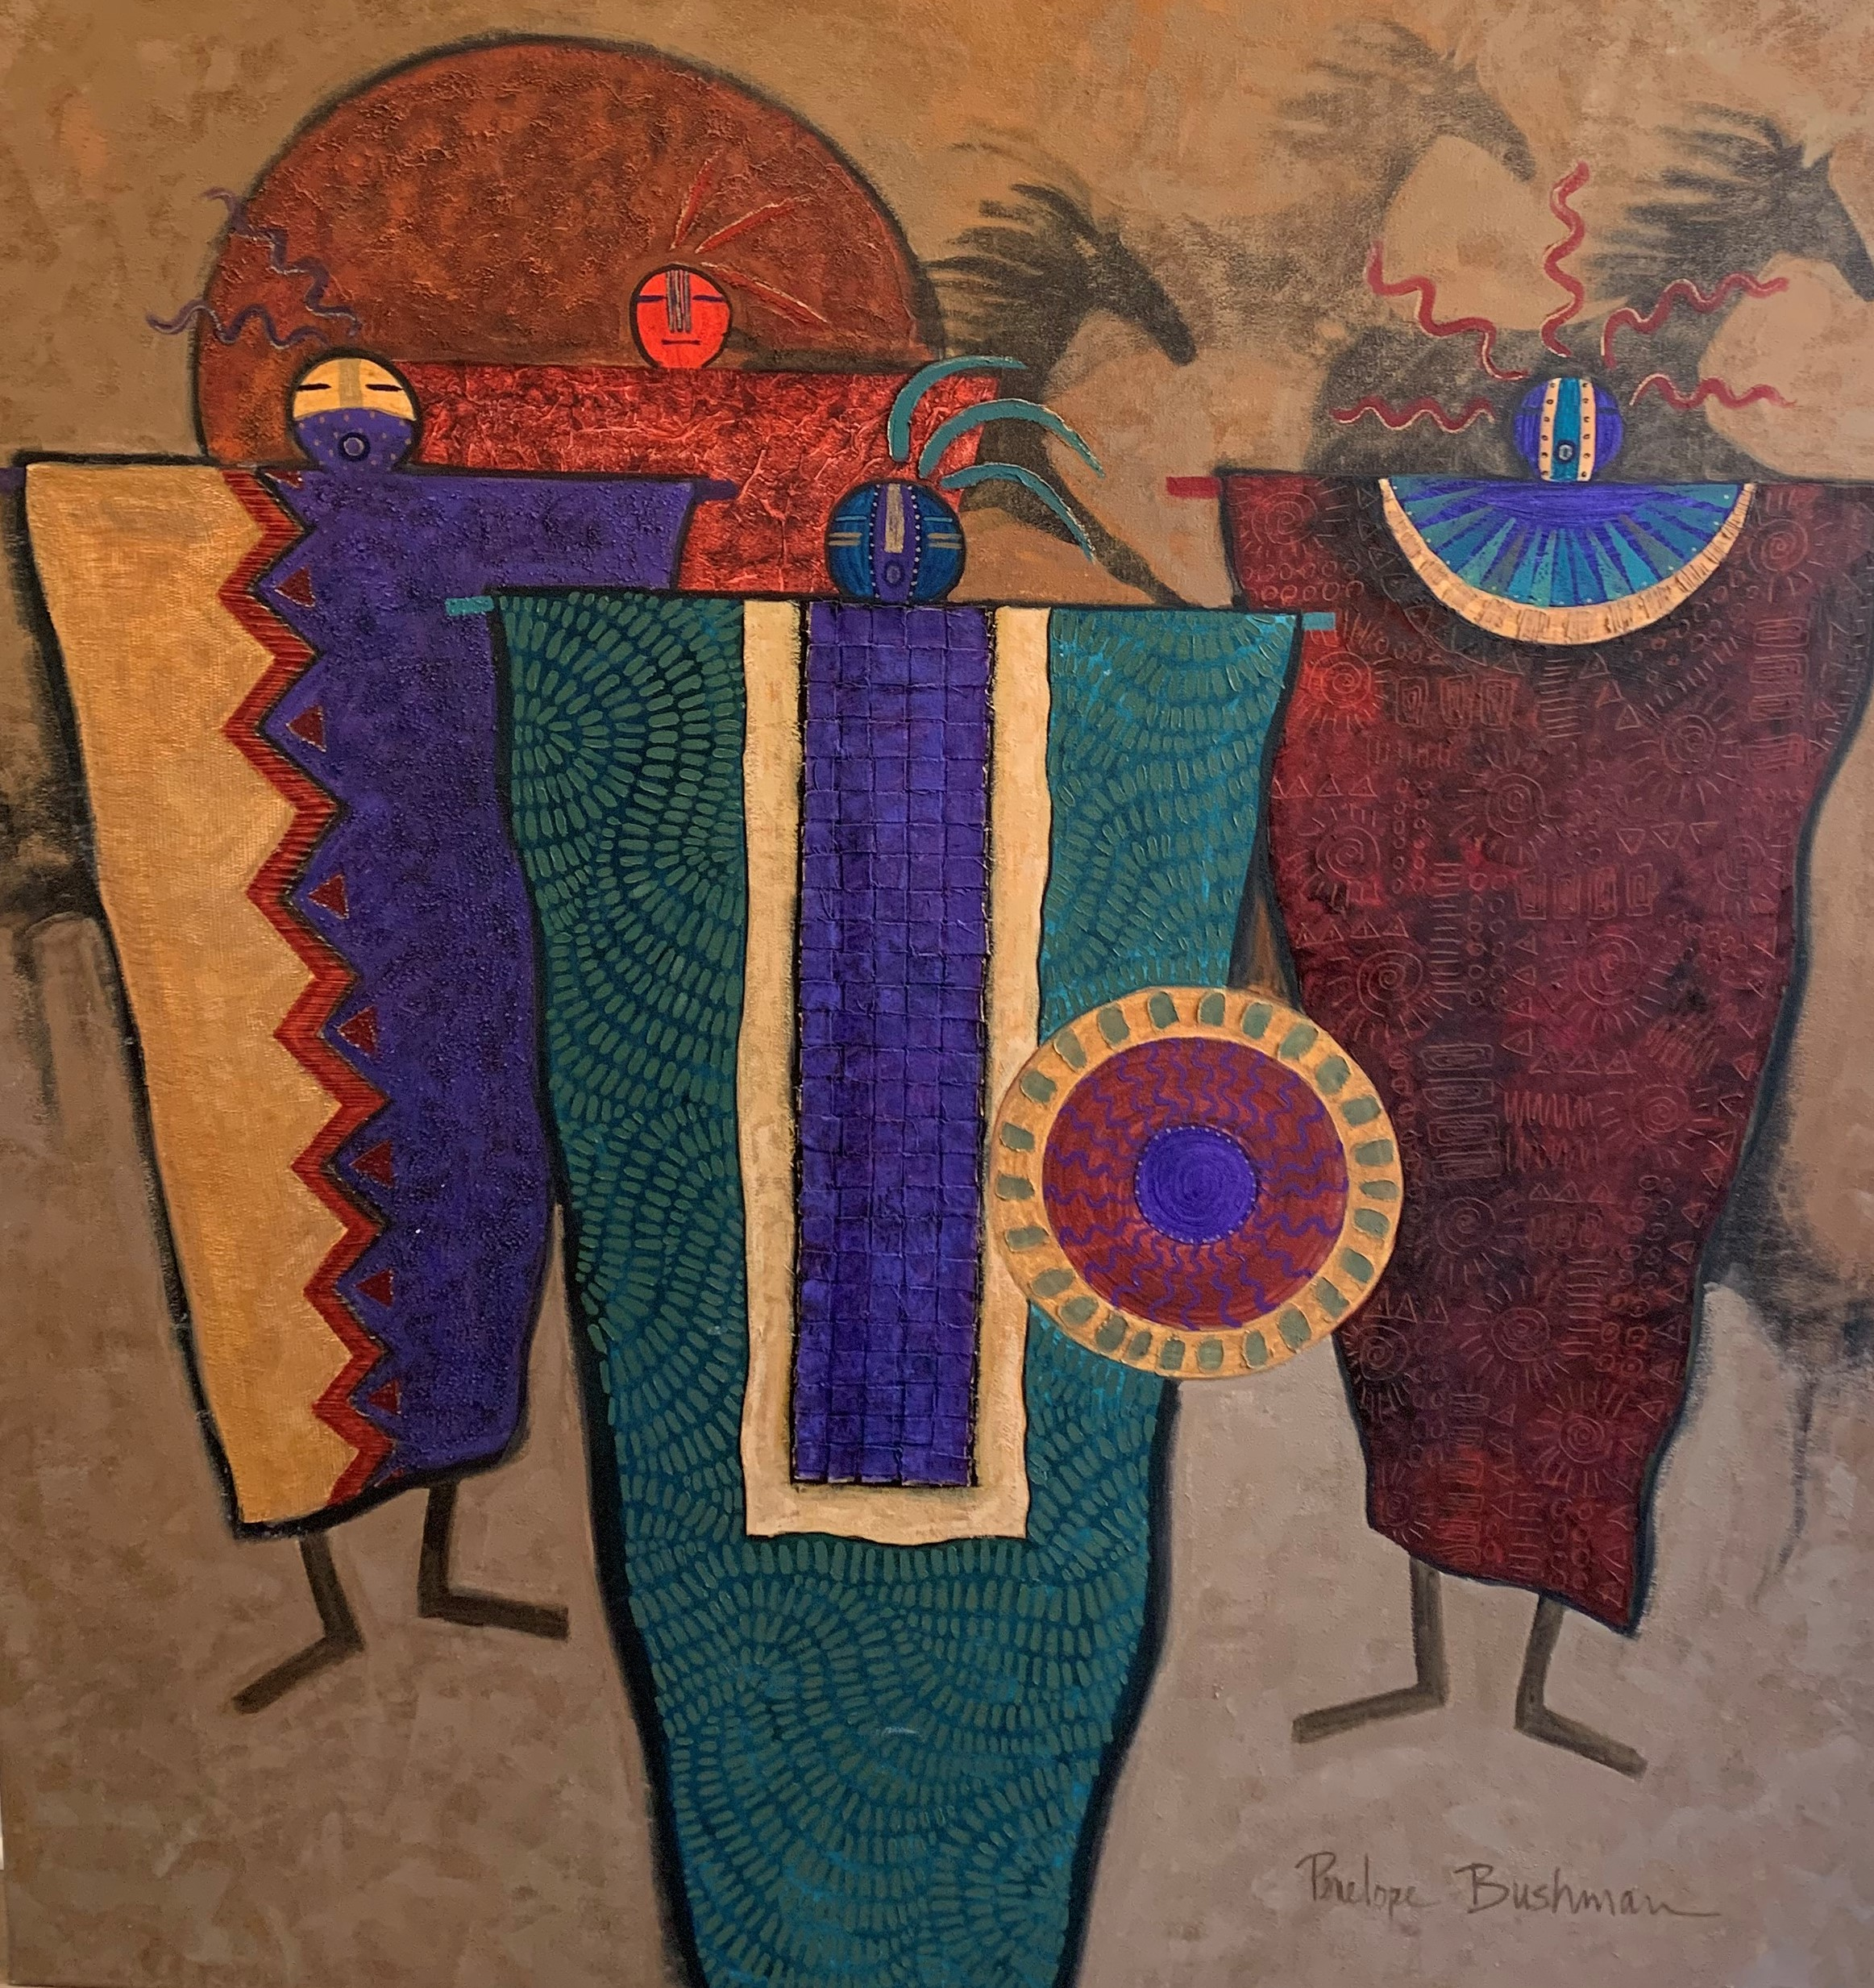 Ancient Peacekeepers artwork by Penelope Bushman - art listed for sale on Artplode